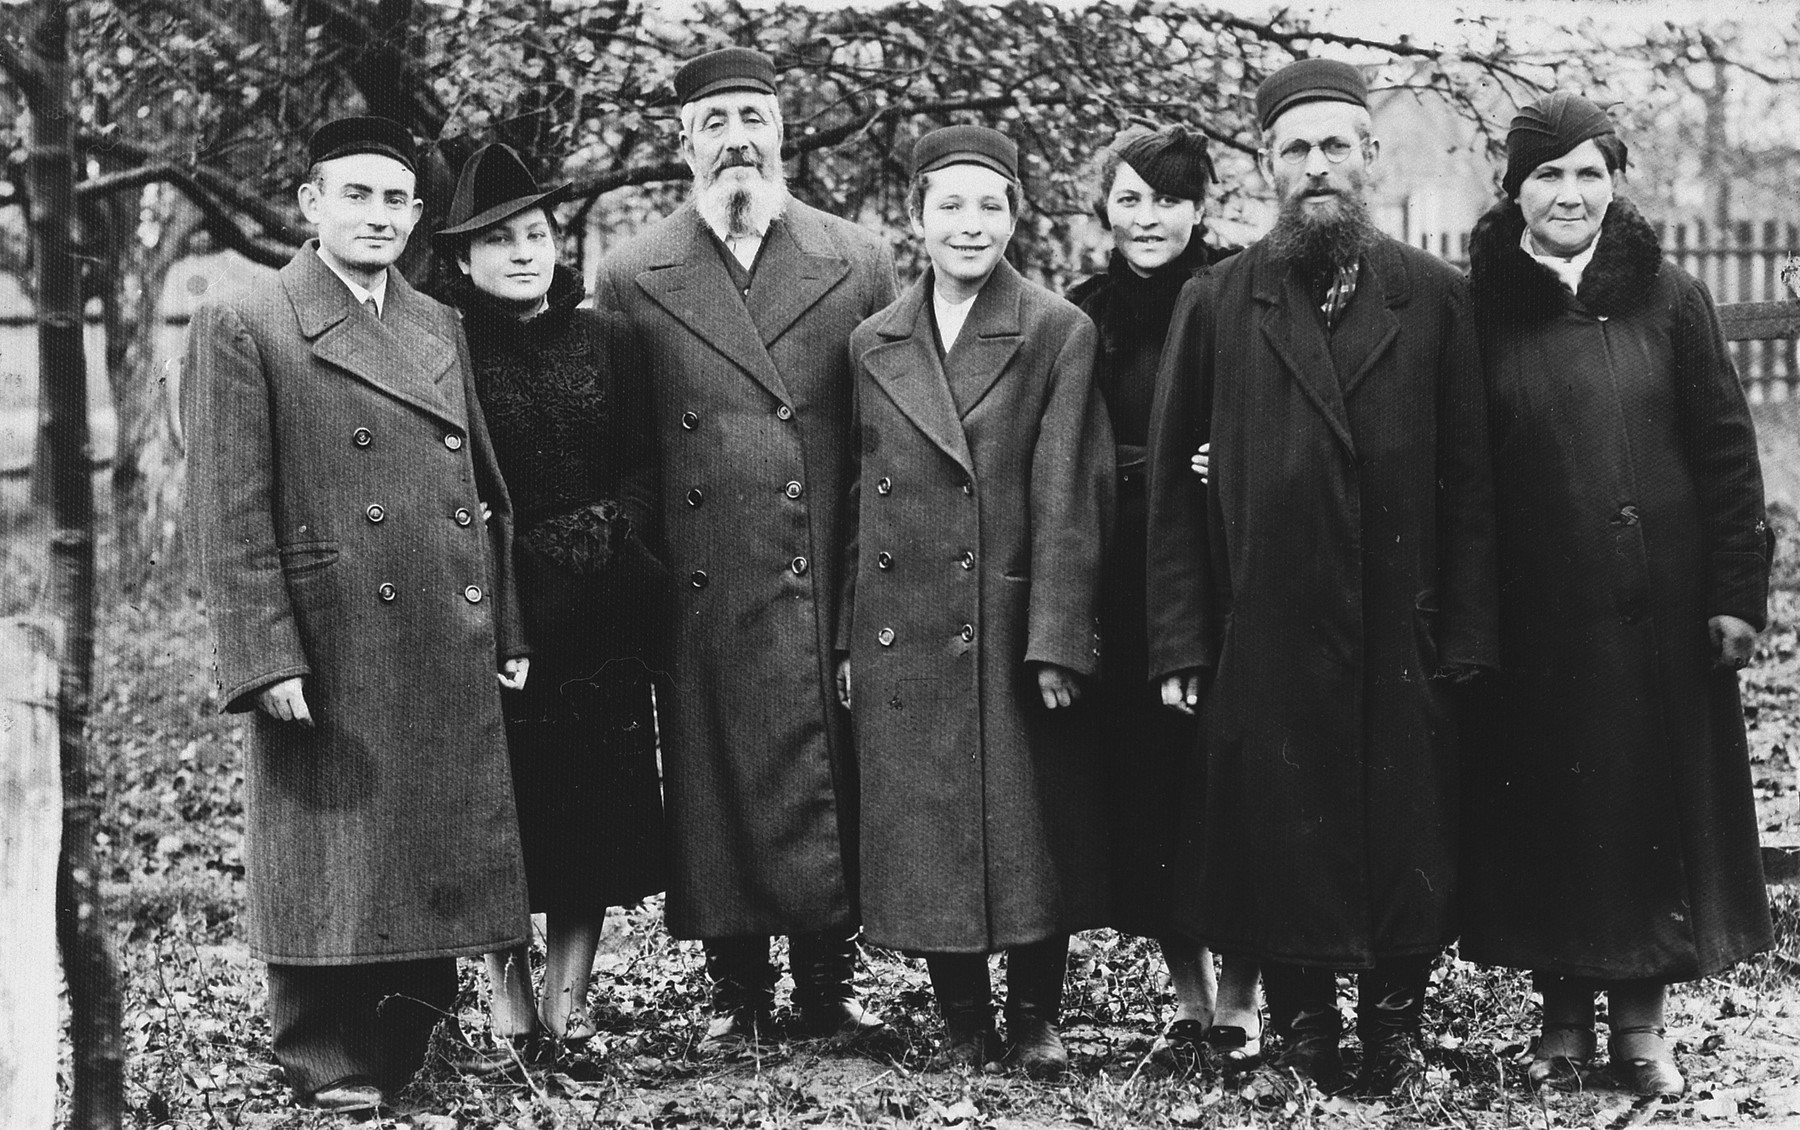 Group portrait of a family of religious Jews in prewar Zelow, Poland.